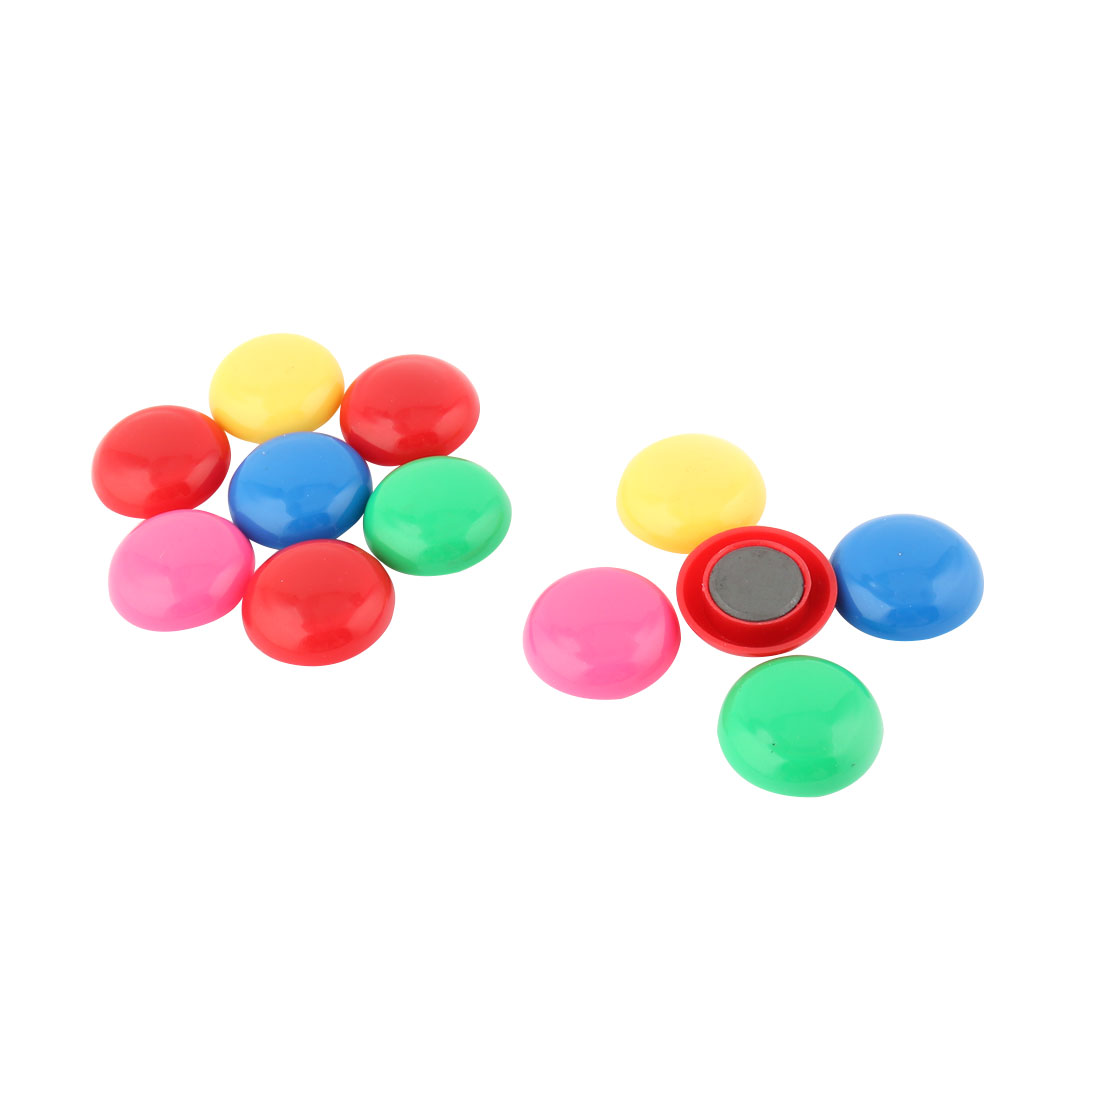 Home Kitchen Fridge Plastic Shell Round Shaped Stationary Magnet Stickers Colorful 12pcs